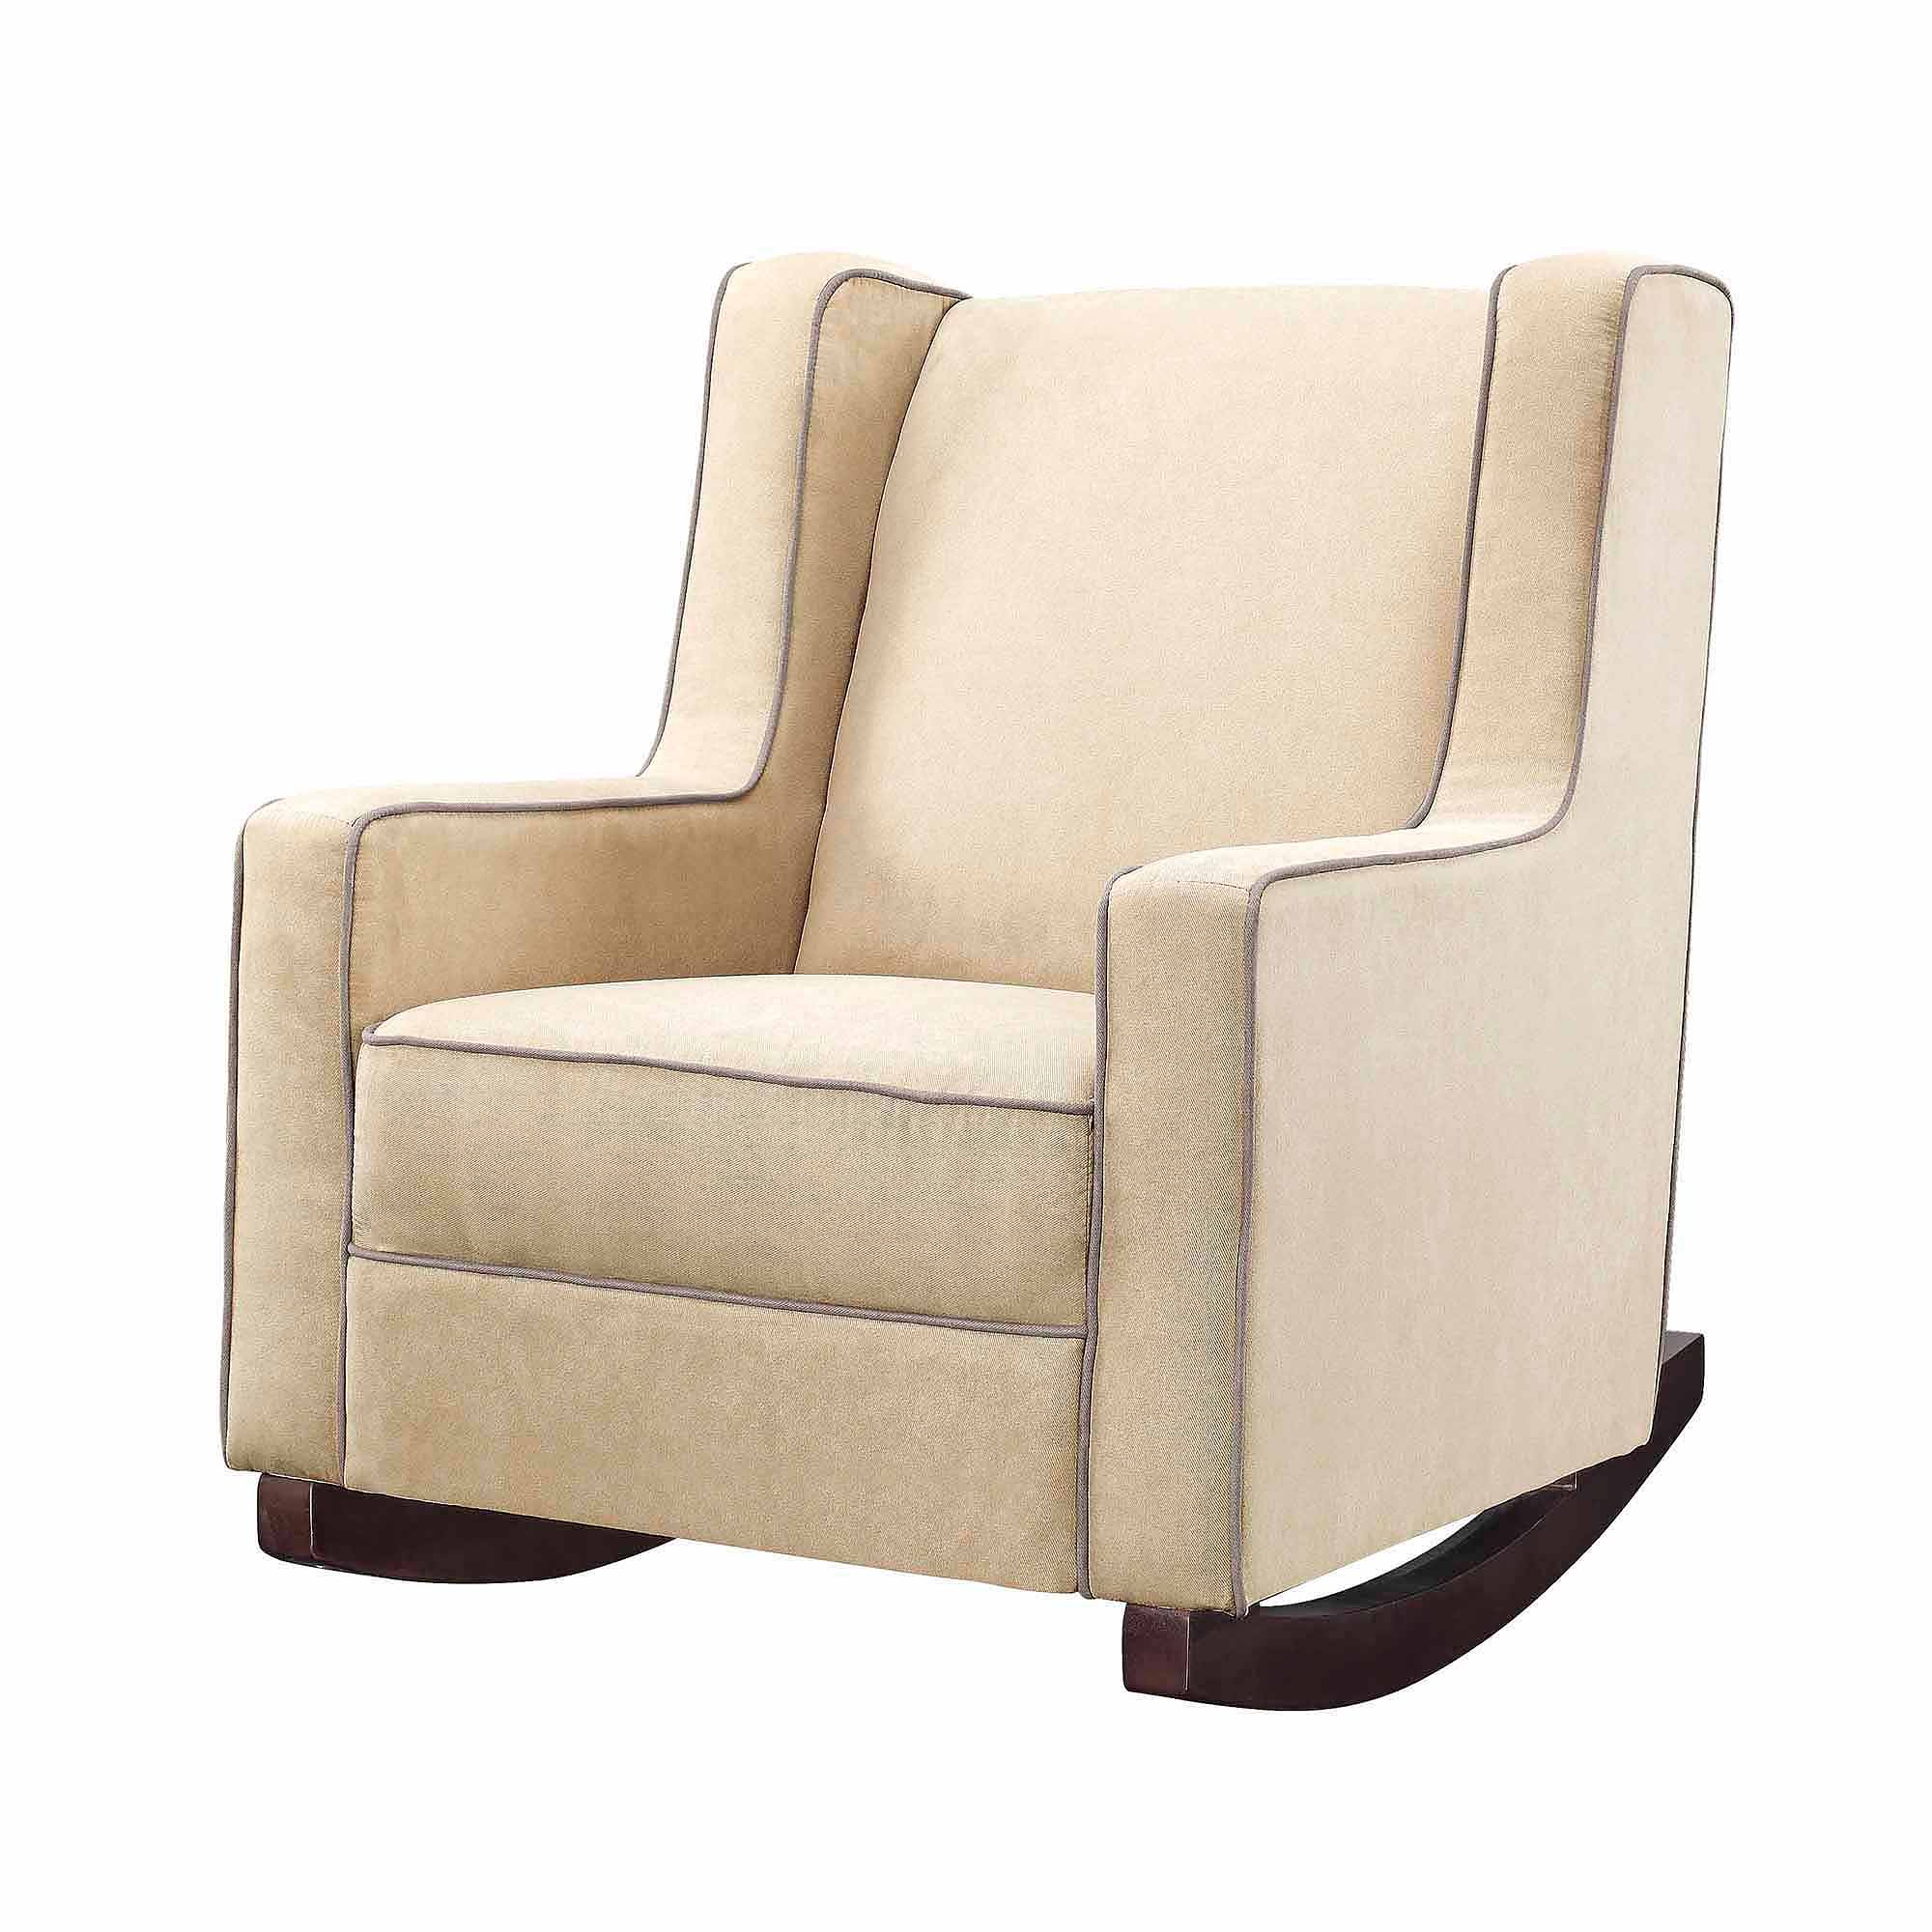 Best And Newest Abbey Swivel Glider Recliners Pertaining To Baby Relax Abby Rocker – Walmart (Gallery 13 of 20)